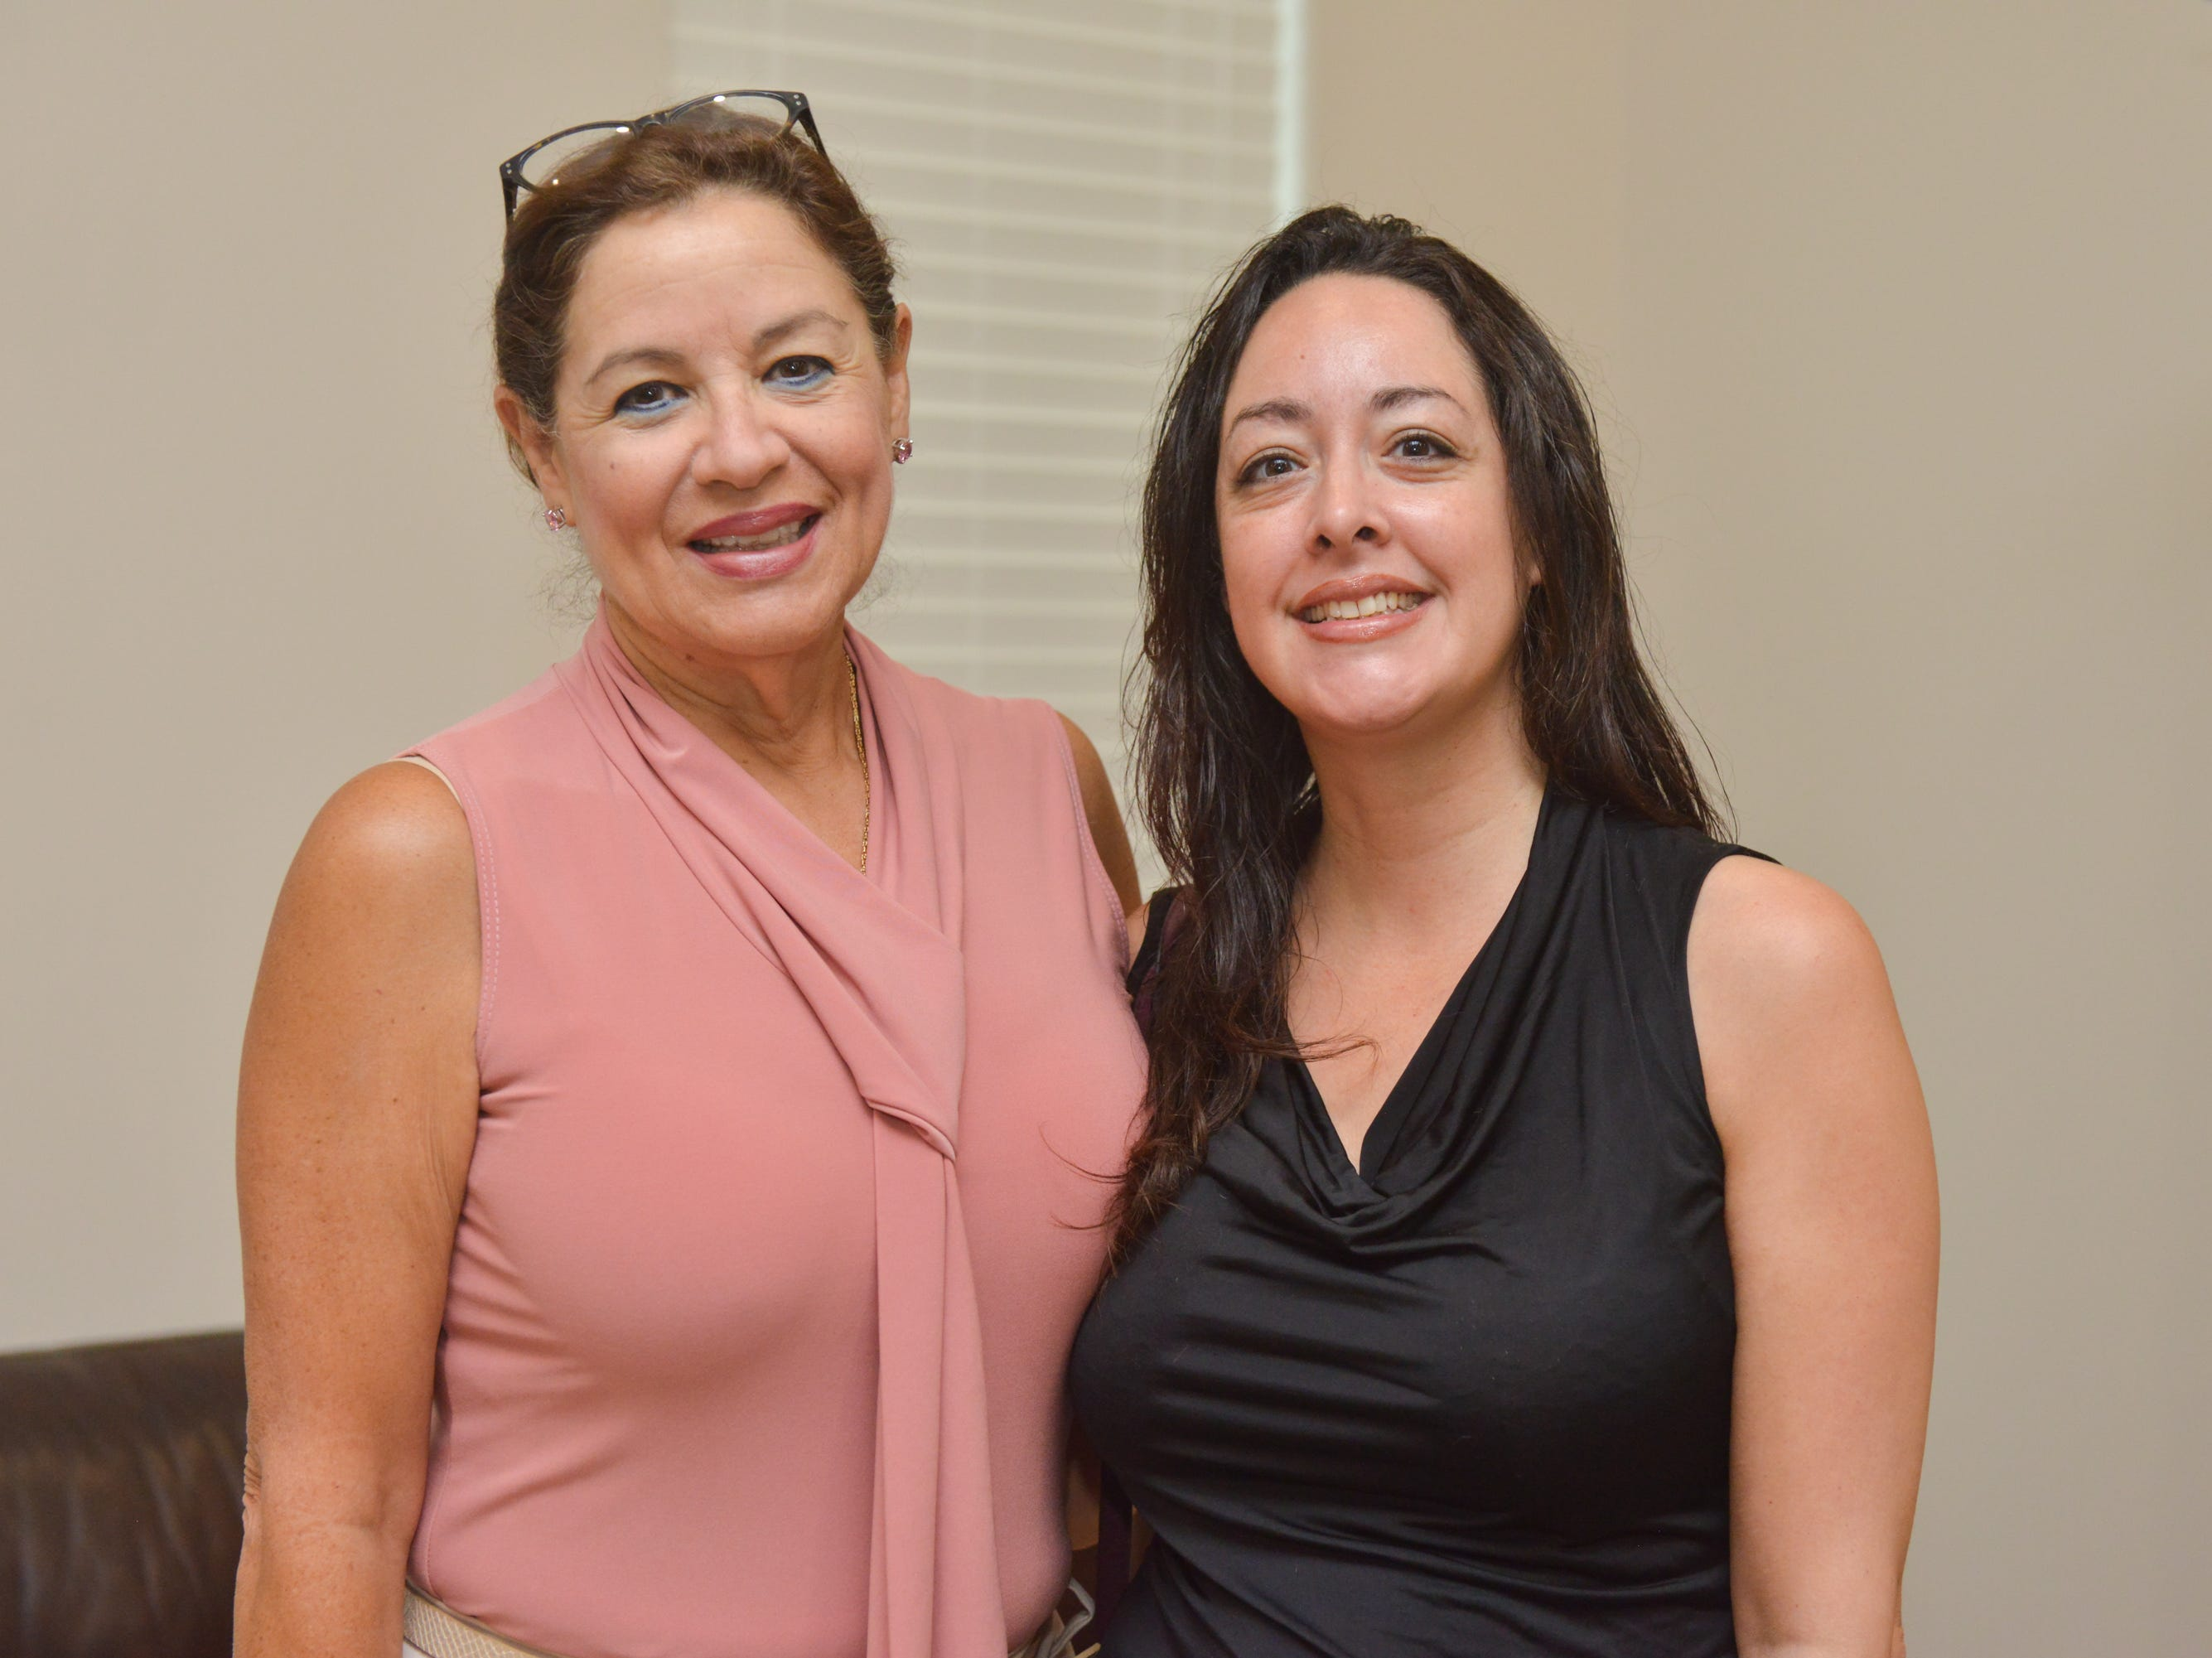 Trina Downey and Evelyn Salazar during the Women of Excellence Gathering at Promise in Brevard sponsored by the Melbourne Regional Chamber.